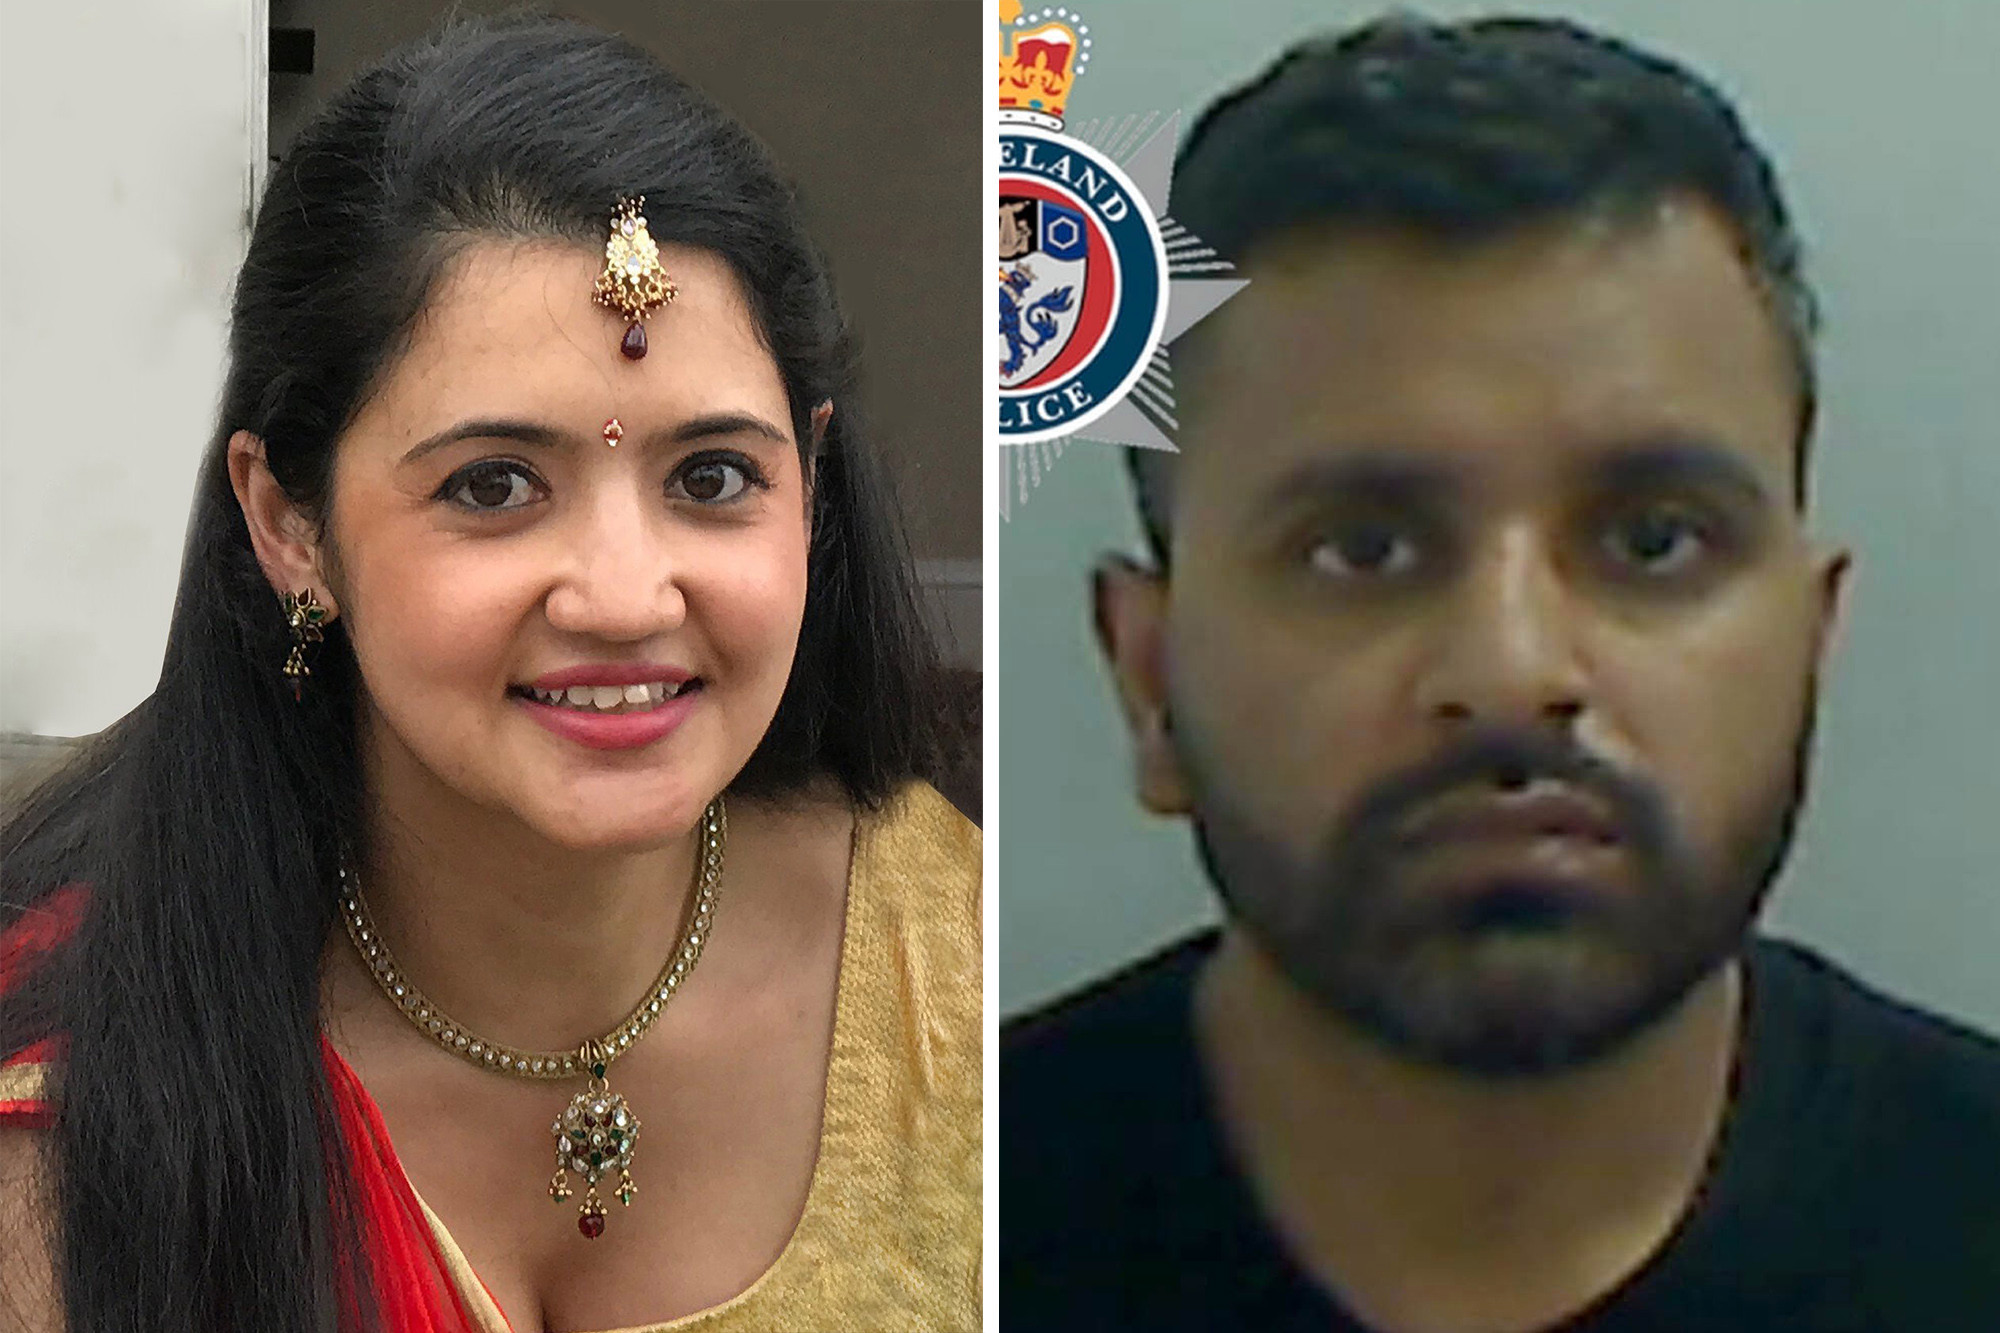 Pharmacist staged break-in to kill wife and run off with Grindr lover